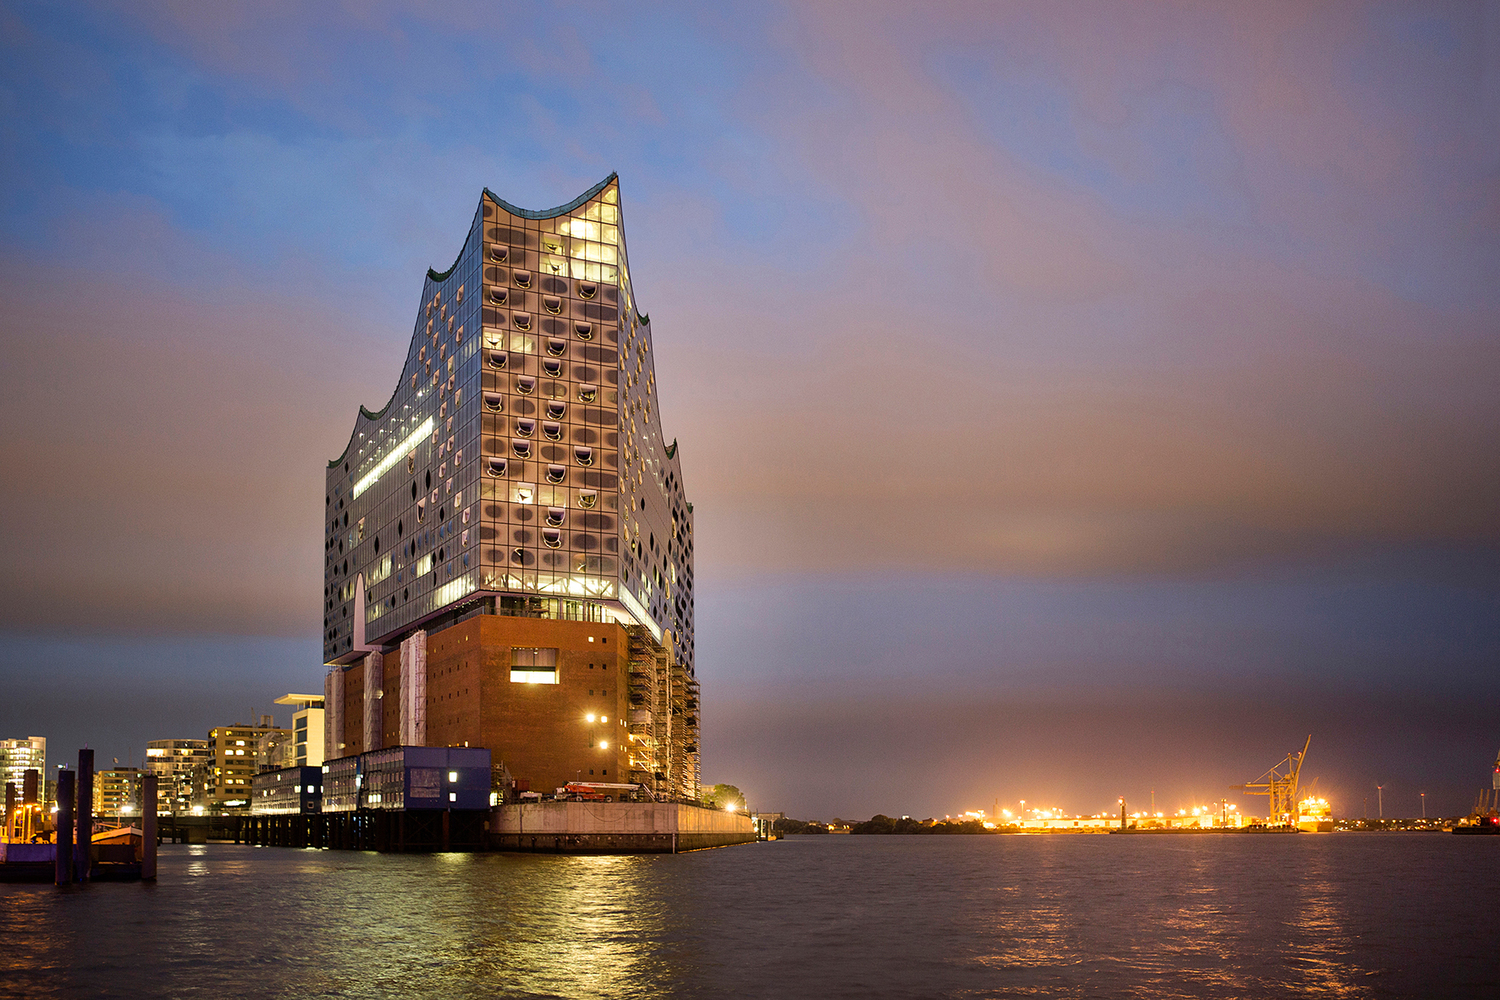 elbphilharmonie | Sunset Photo | Hamburg | ipachrome design | AGC Interpane | Riverbank in Hamburg | designed by Herzog & de Meuron